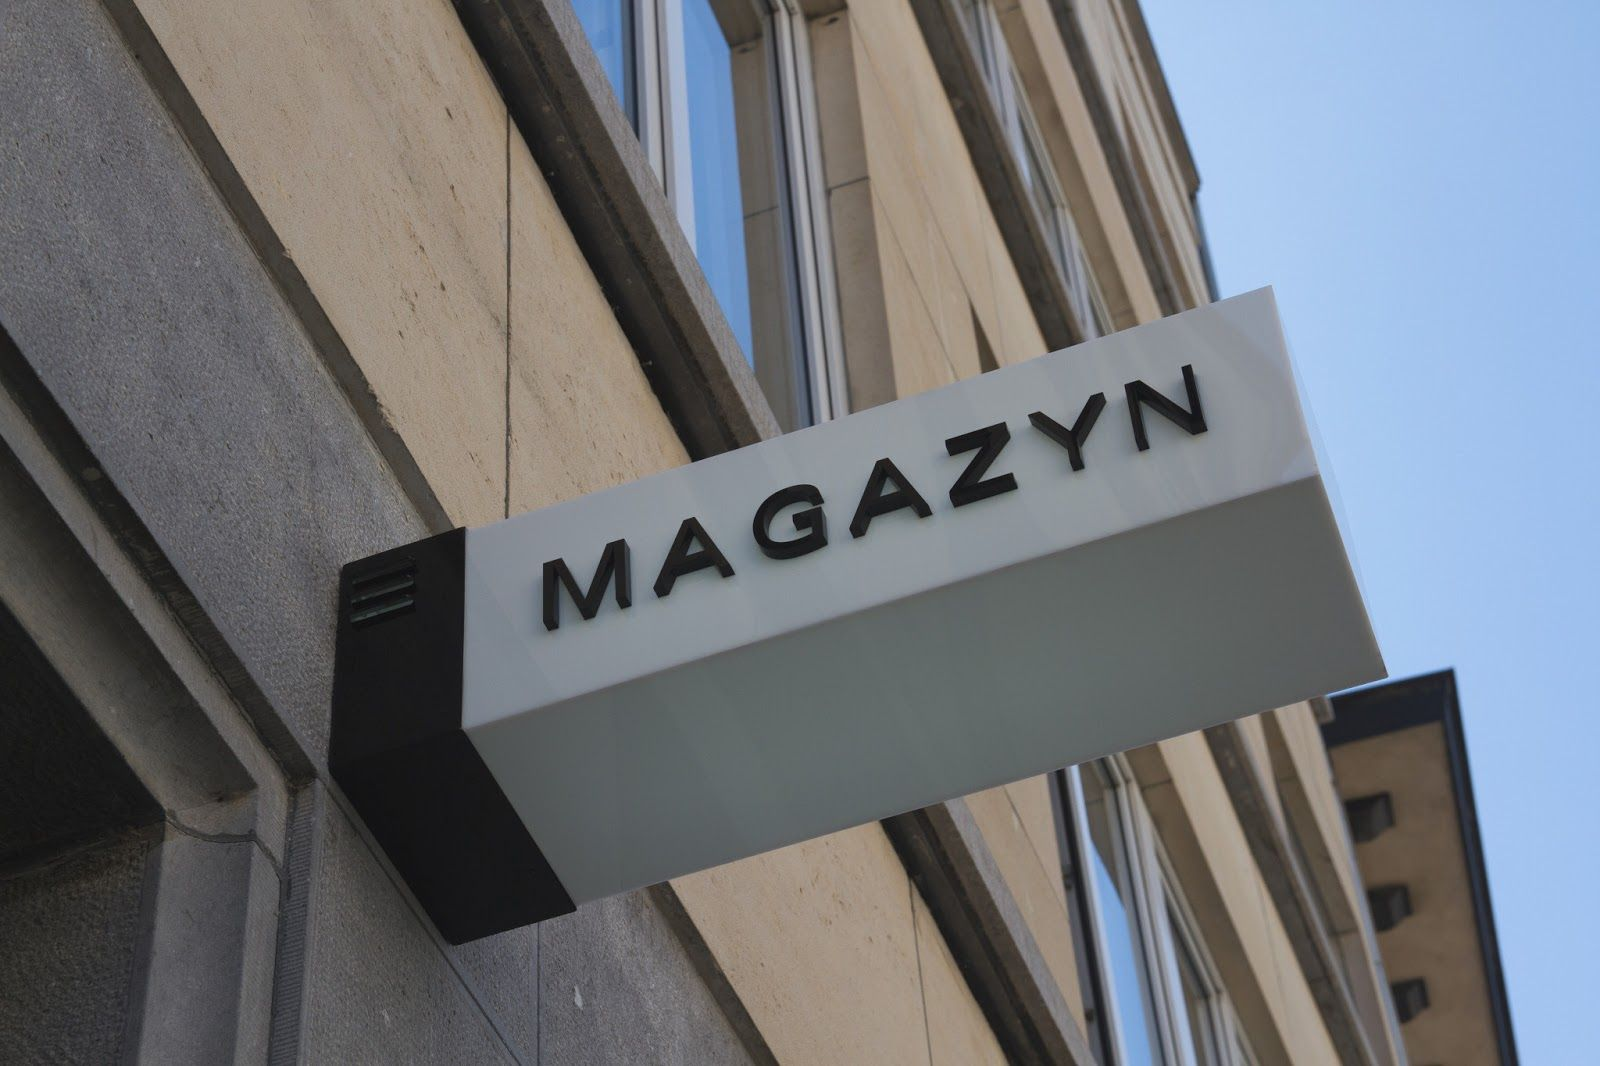 MAGAZYN my absolute favorite interior design